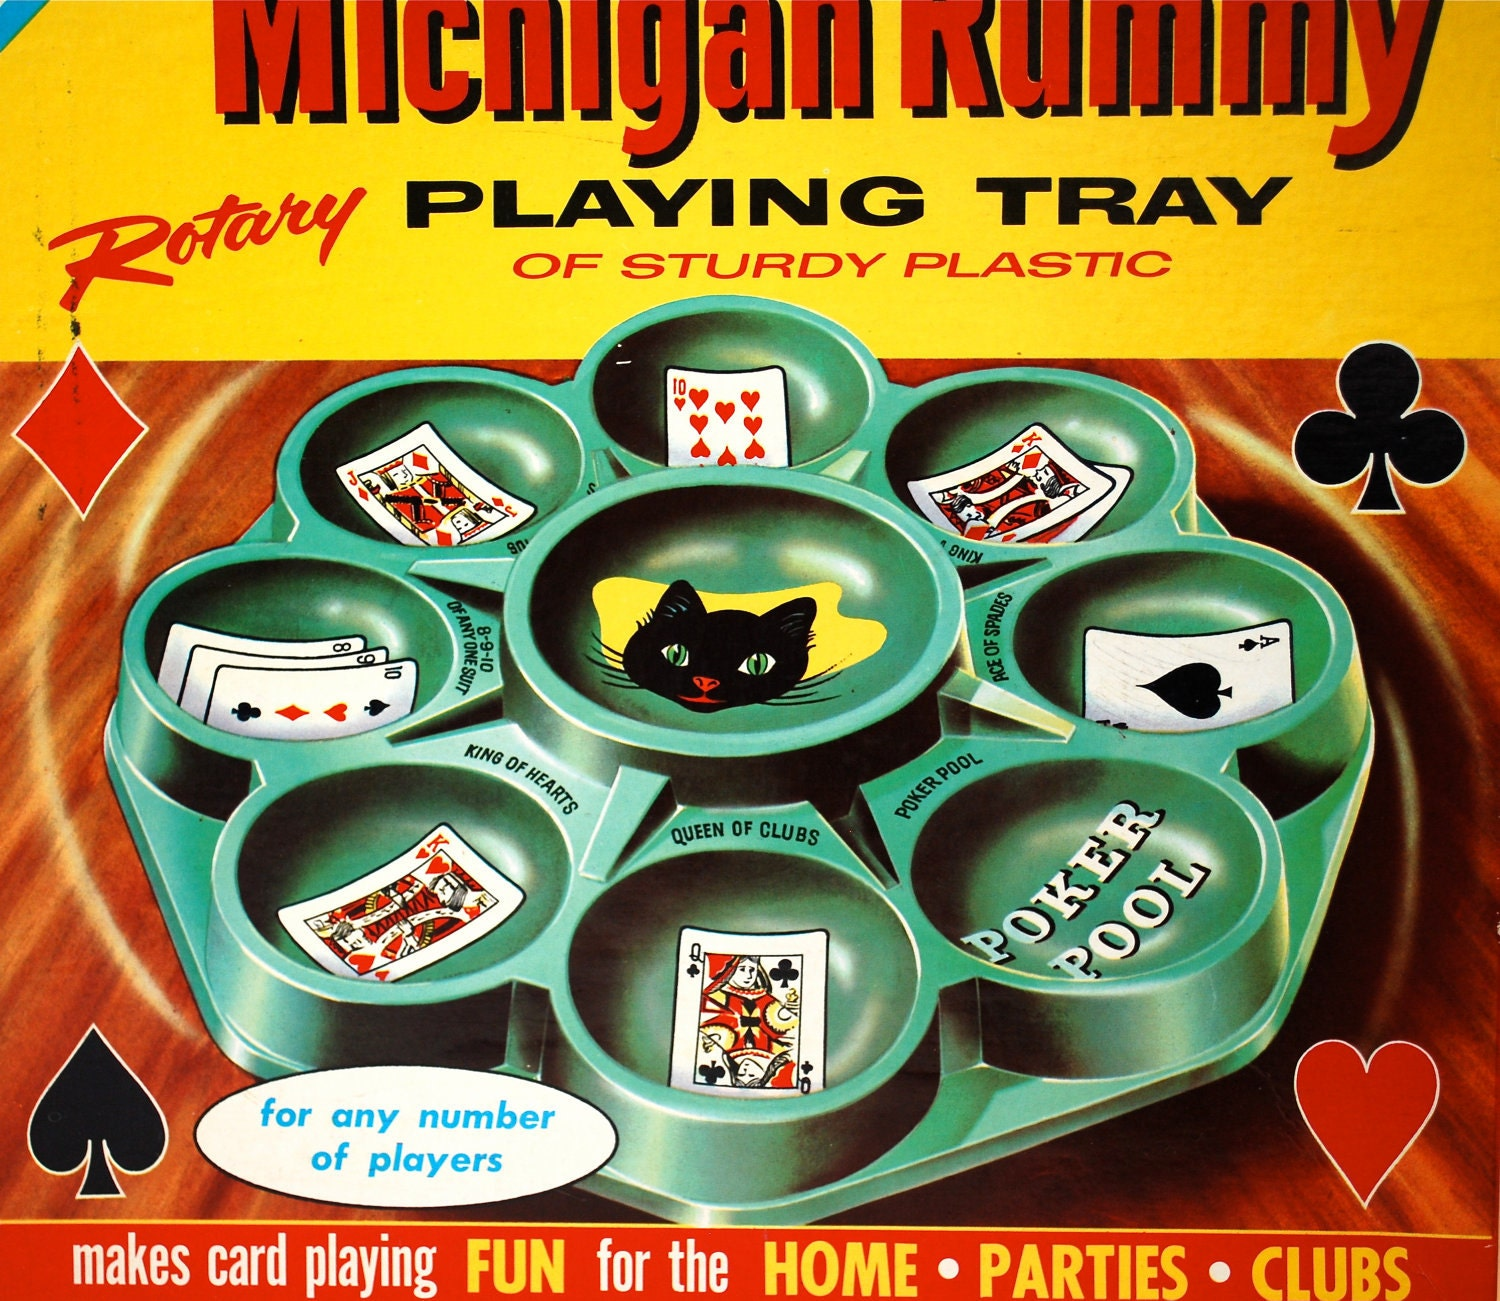 Michigan Gaming